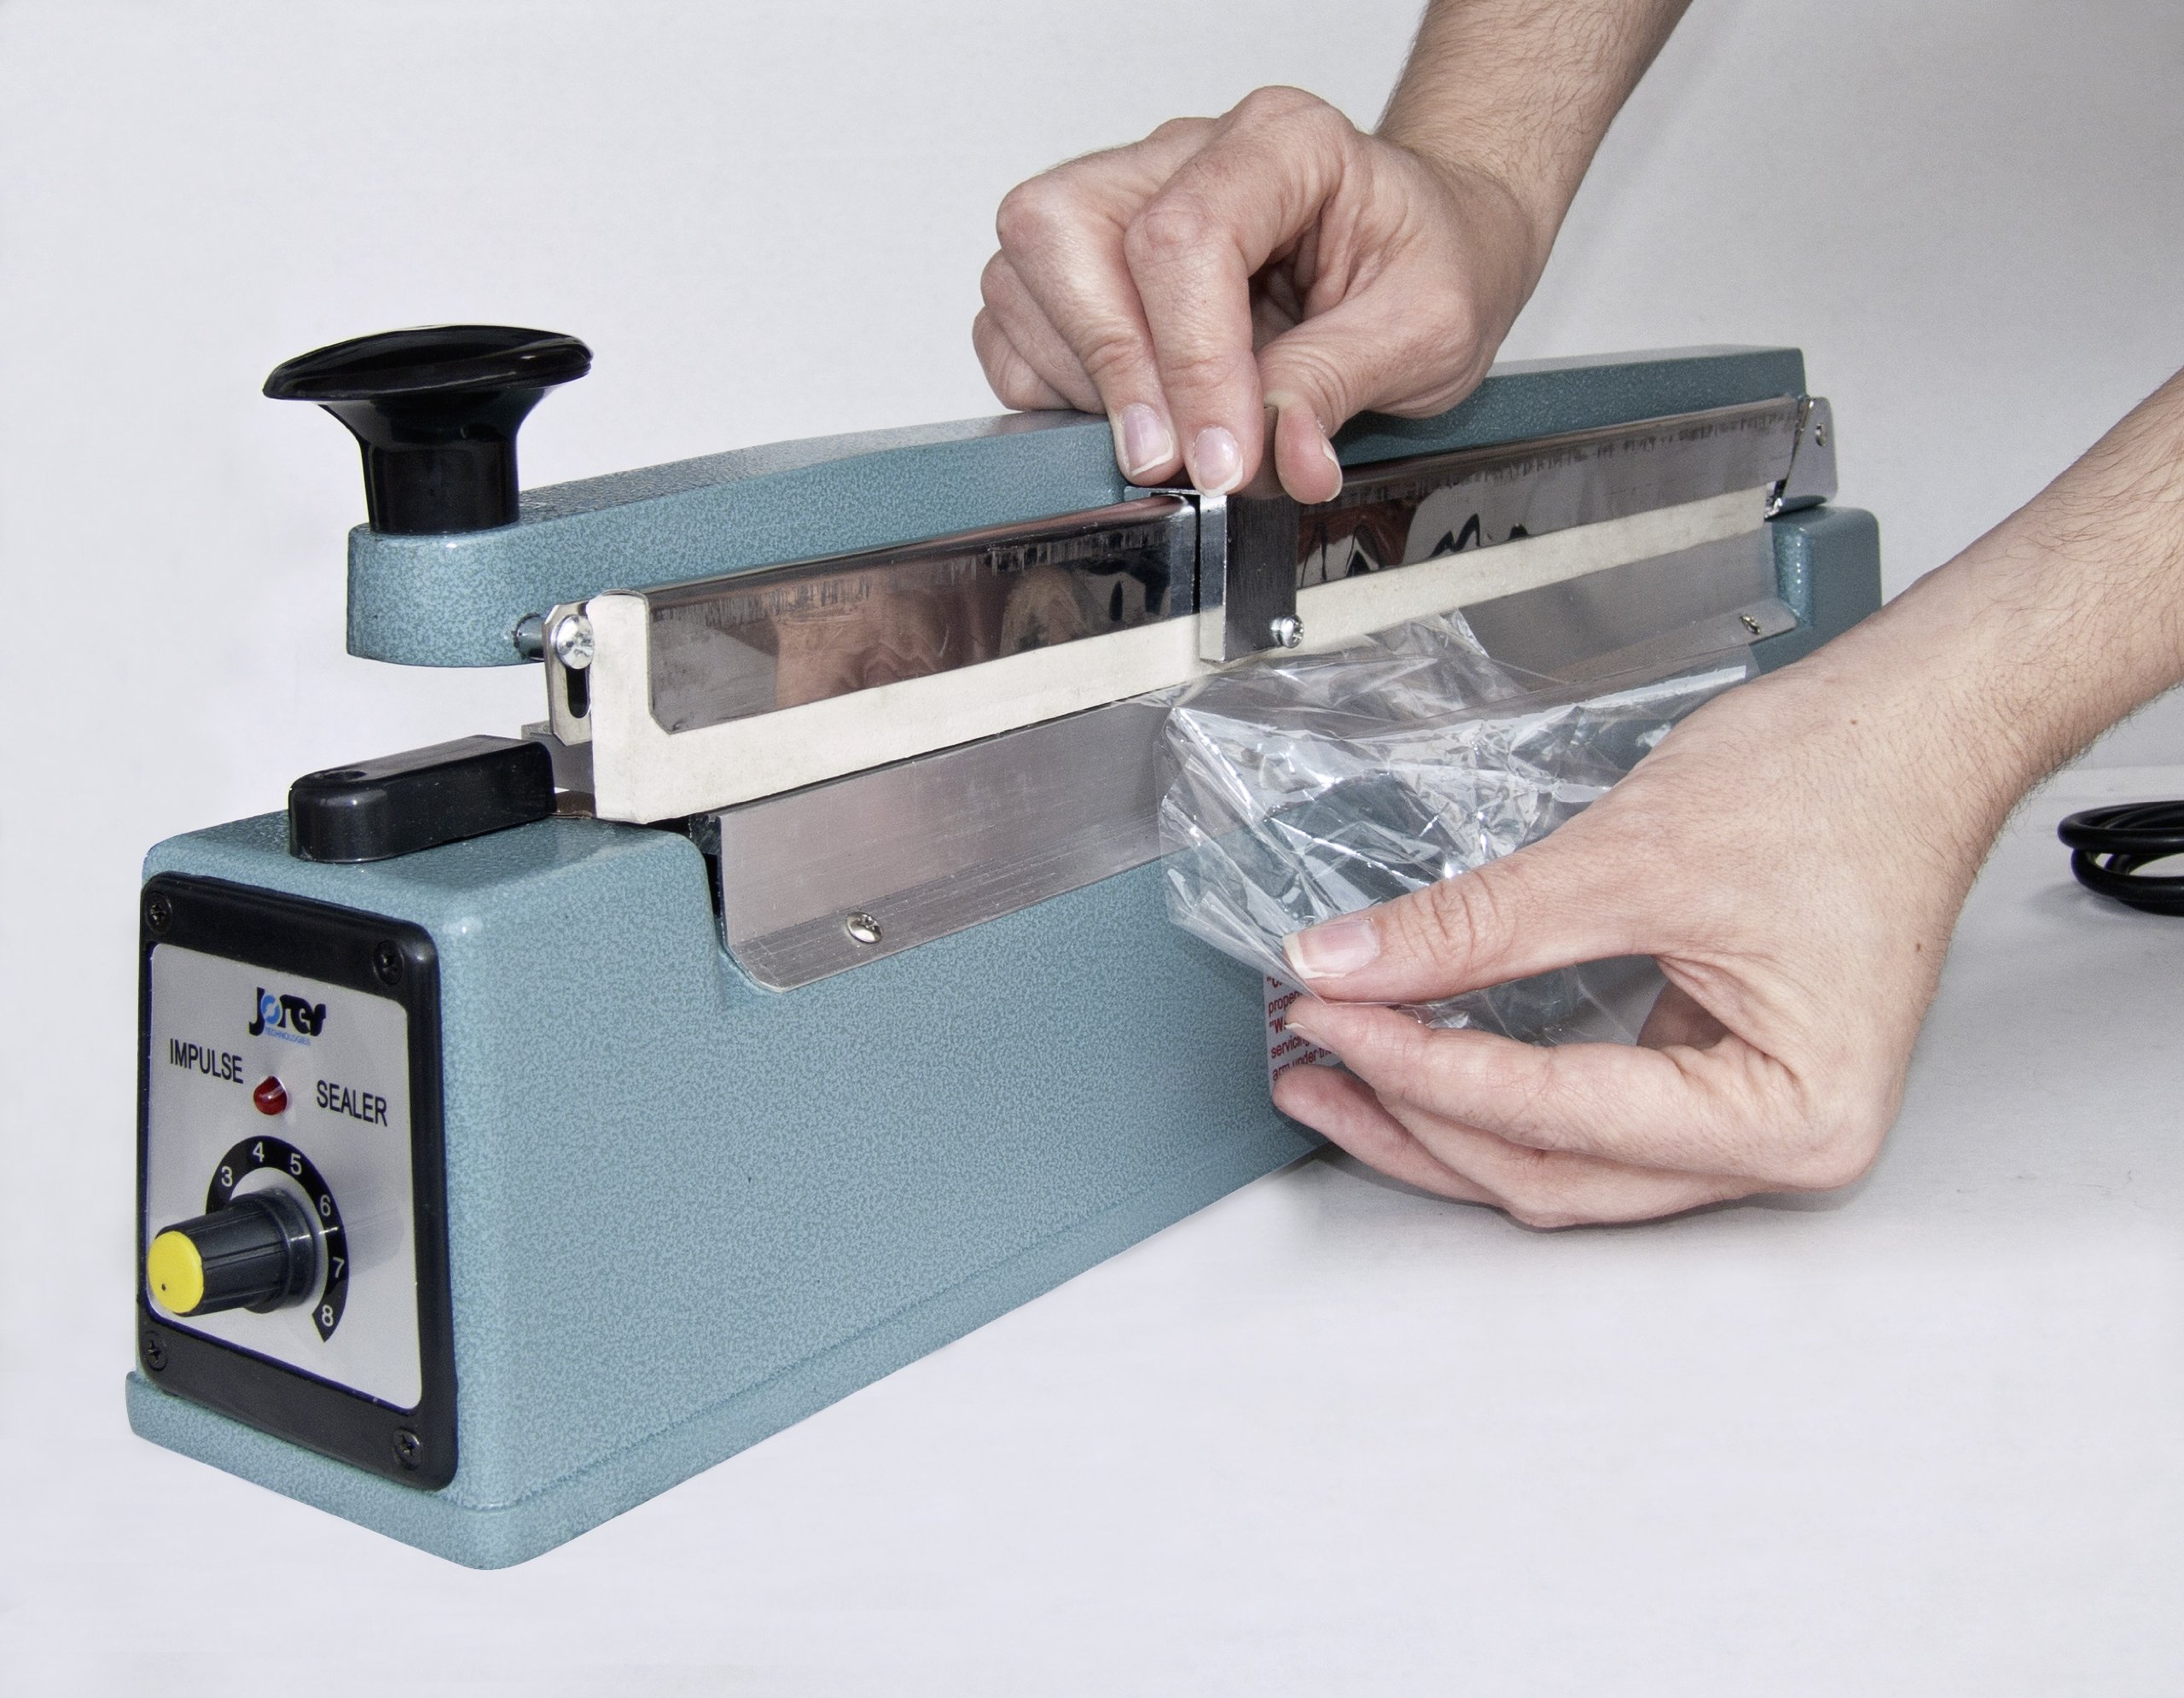 Impulse Manual Bag Sealer Heat Seal Closer (16 Inch with cutter, 110 Volt)